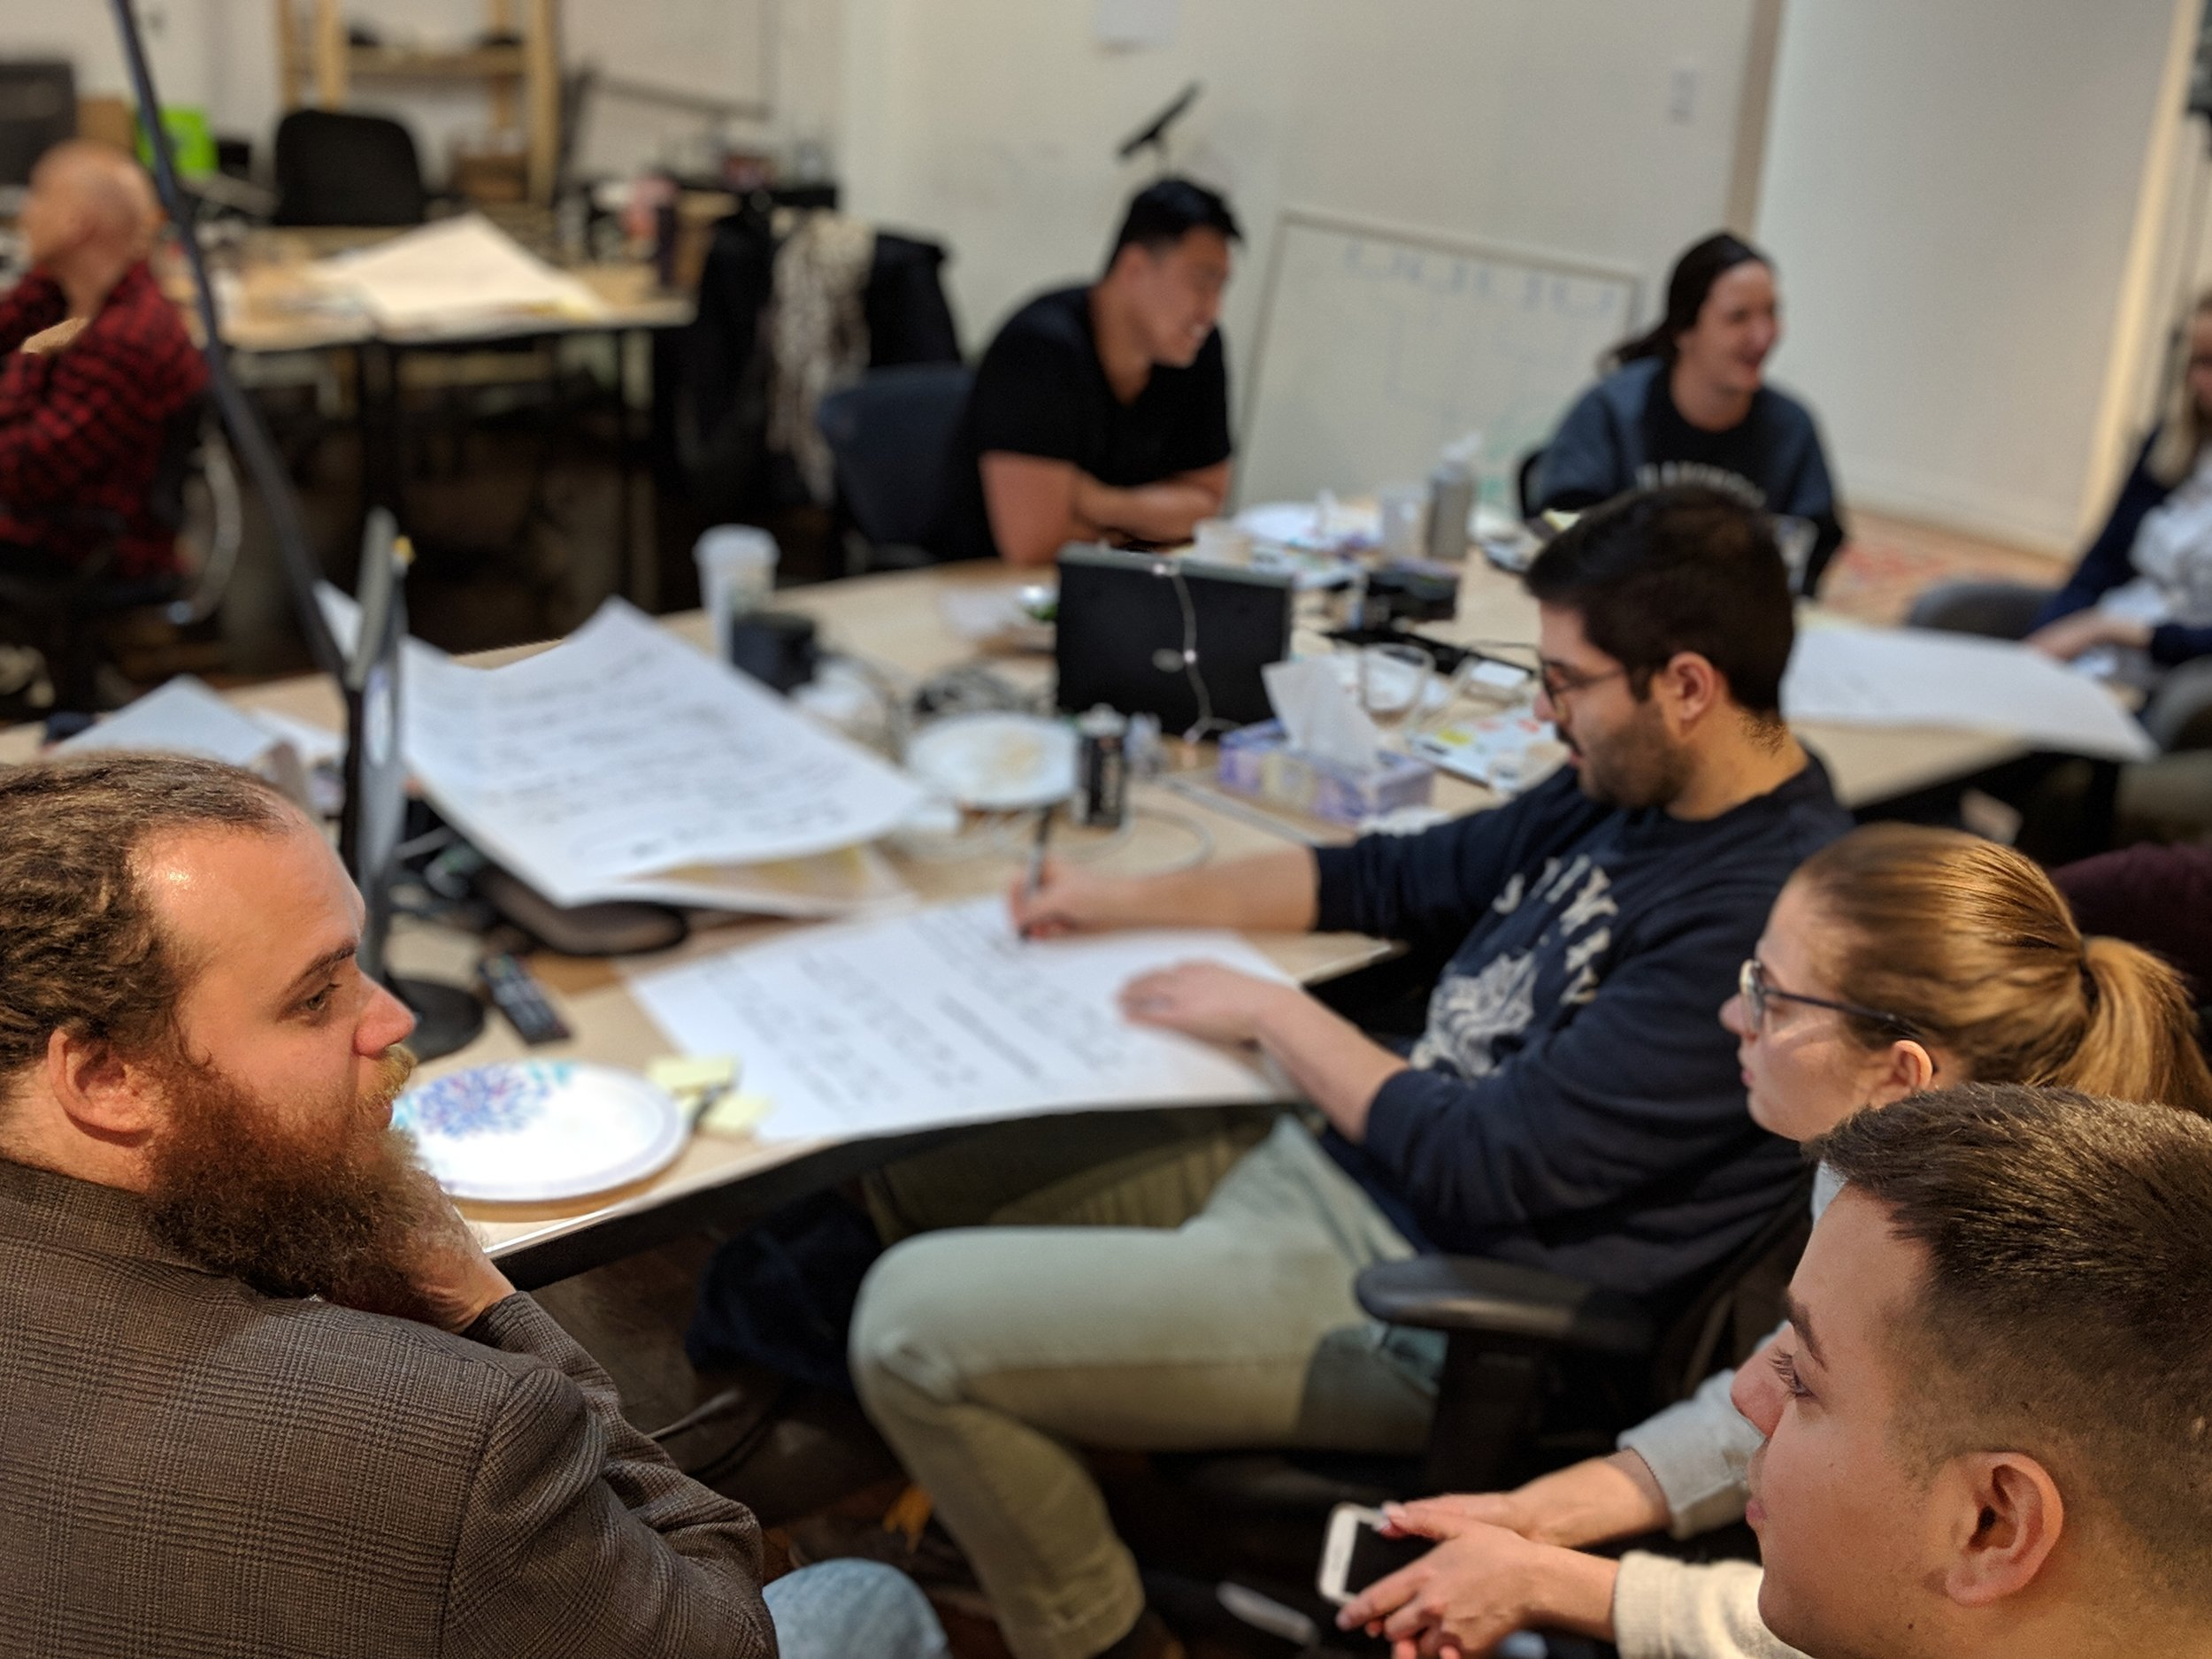 After splitting into small groups, each team was tasked with different brainstorming exercises to dream up ways augmented reality could be used for fintech.